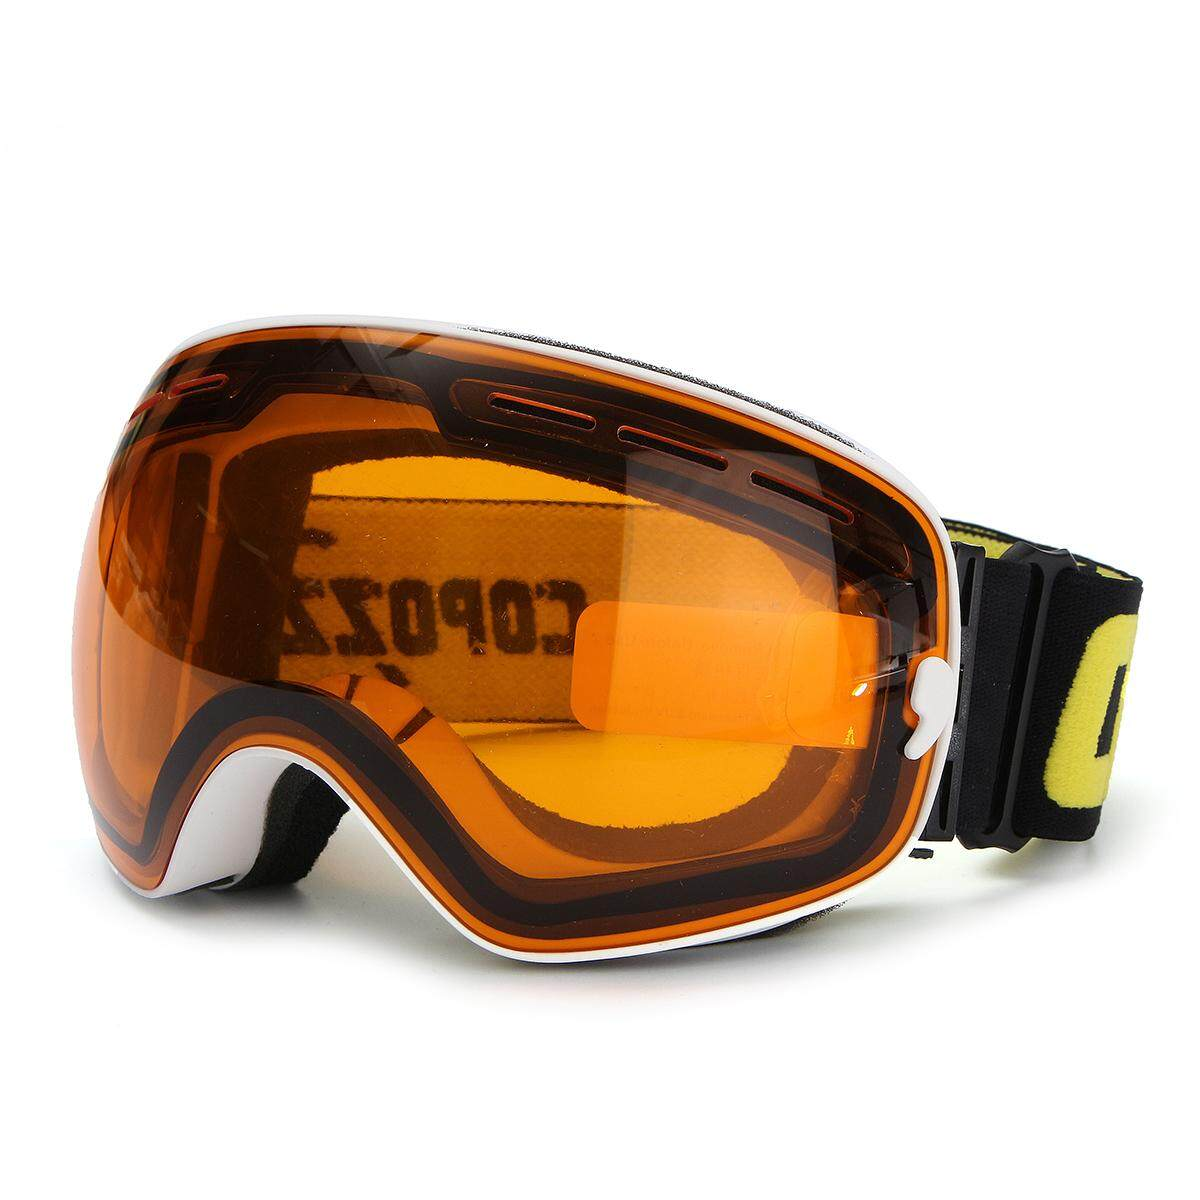 COPOZZ UV400 Spherical Dual-layer Lens Snowboard Glasses Anti-fog Skiing Goggles #Orange-White - intl